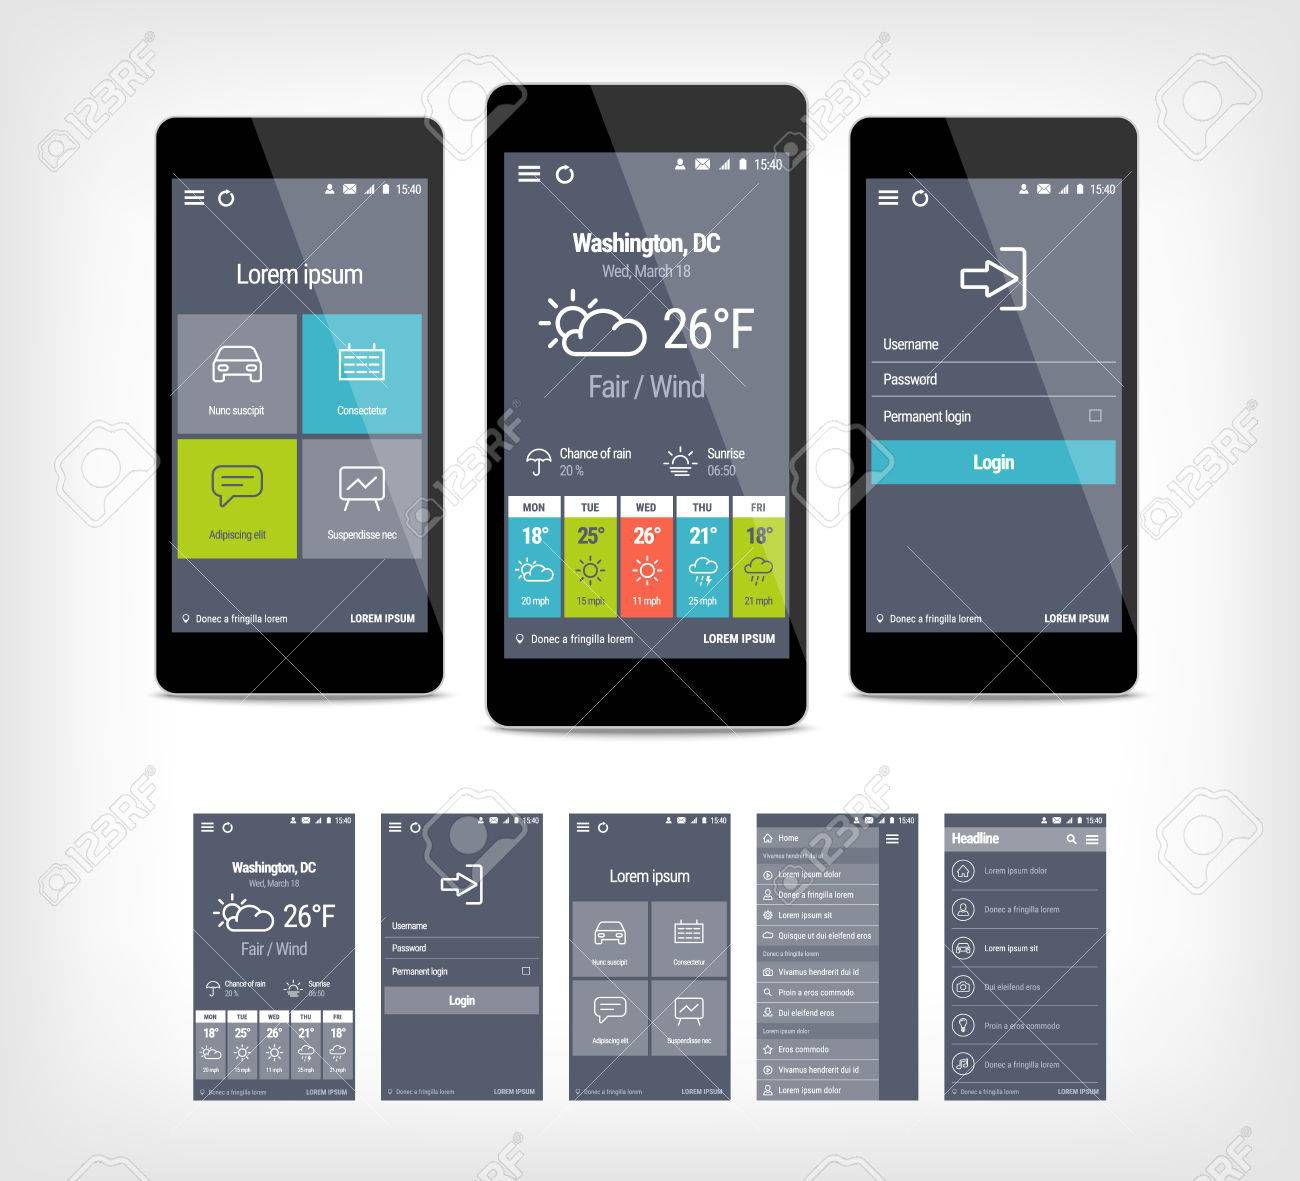 001 Remarkable Mobile App Design Template Example  Size Free Download Ui PsdFull